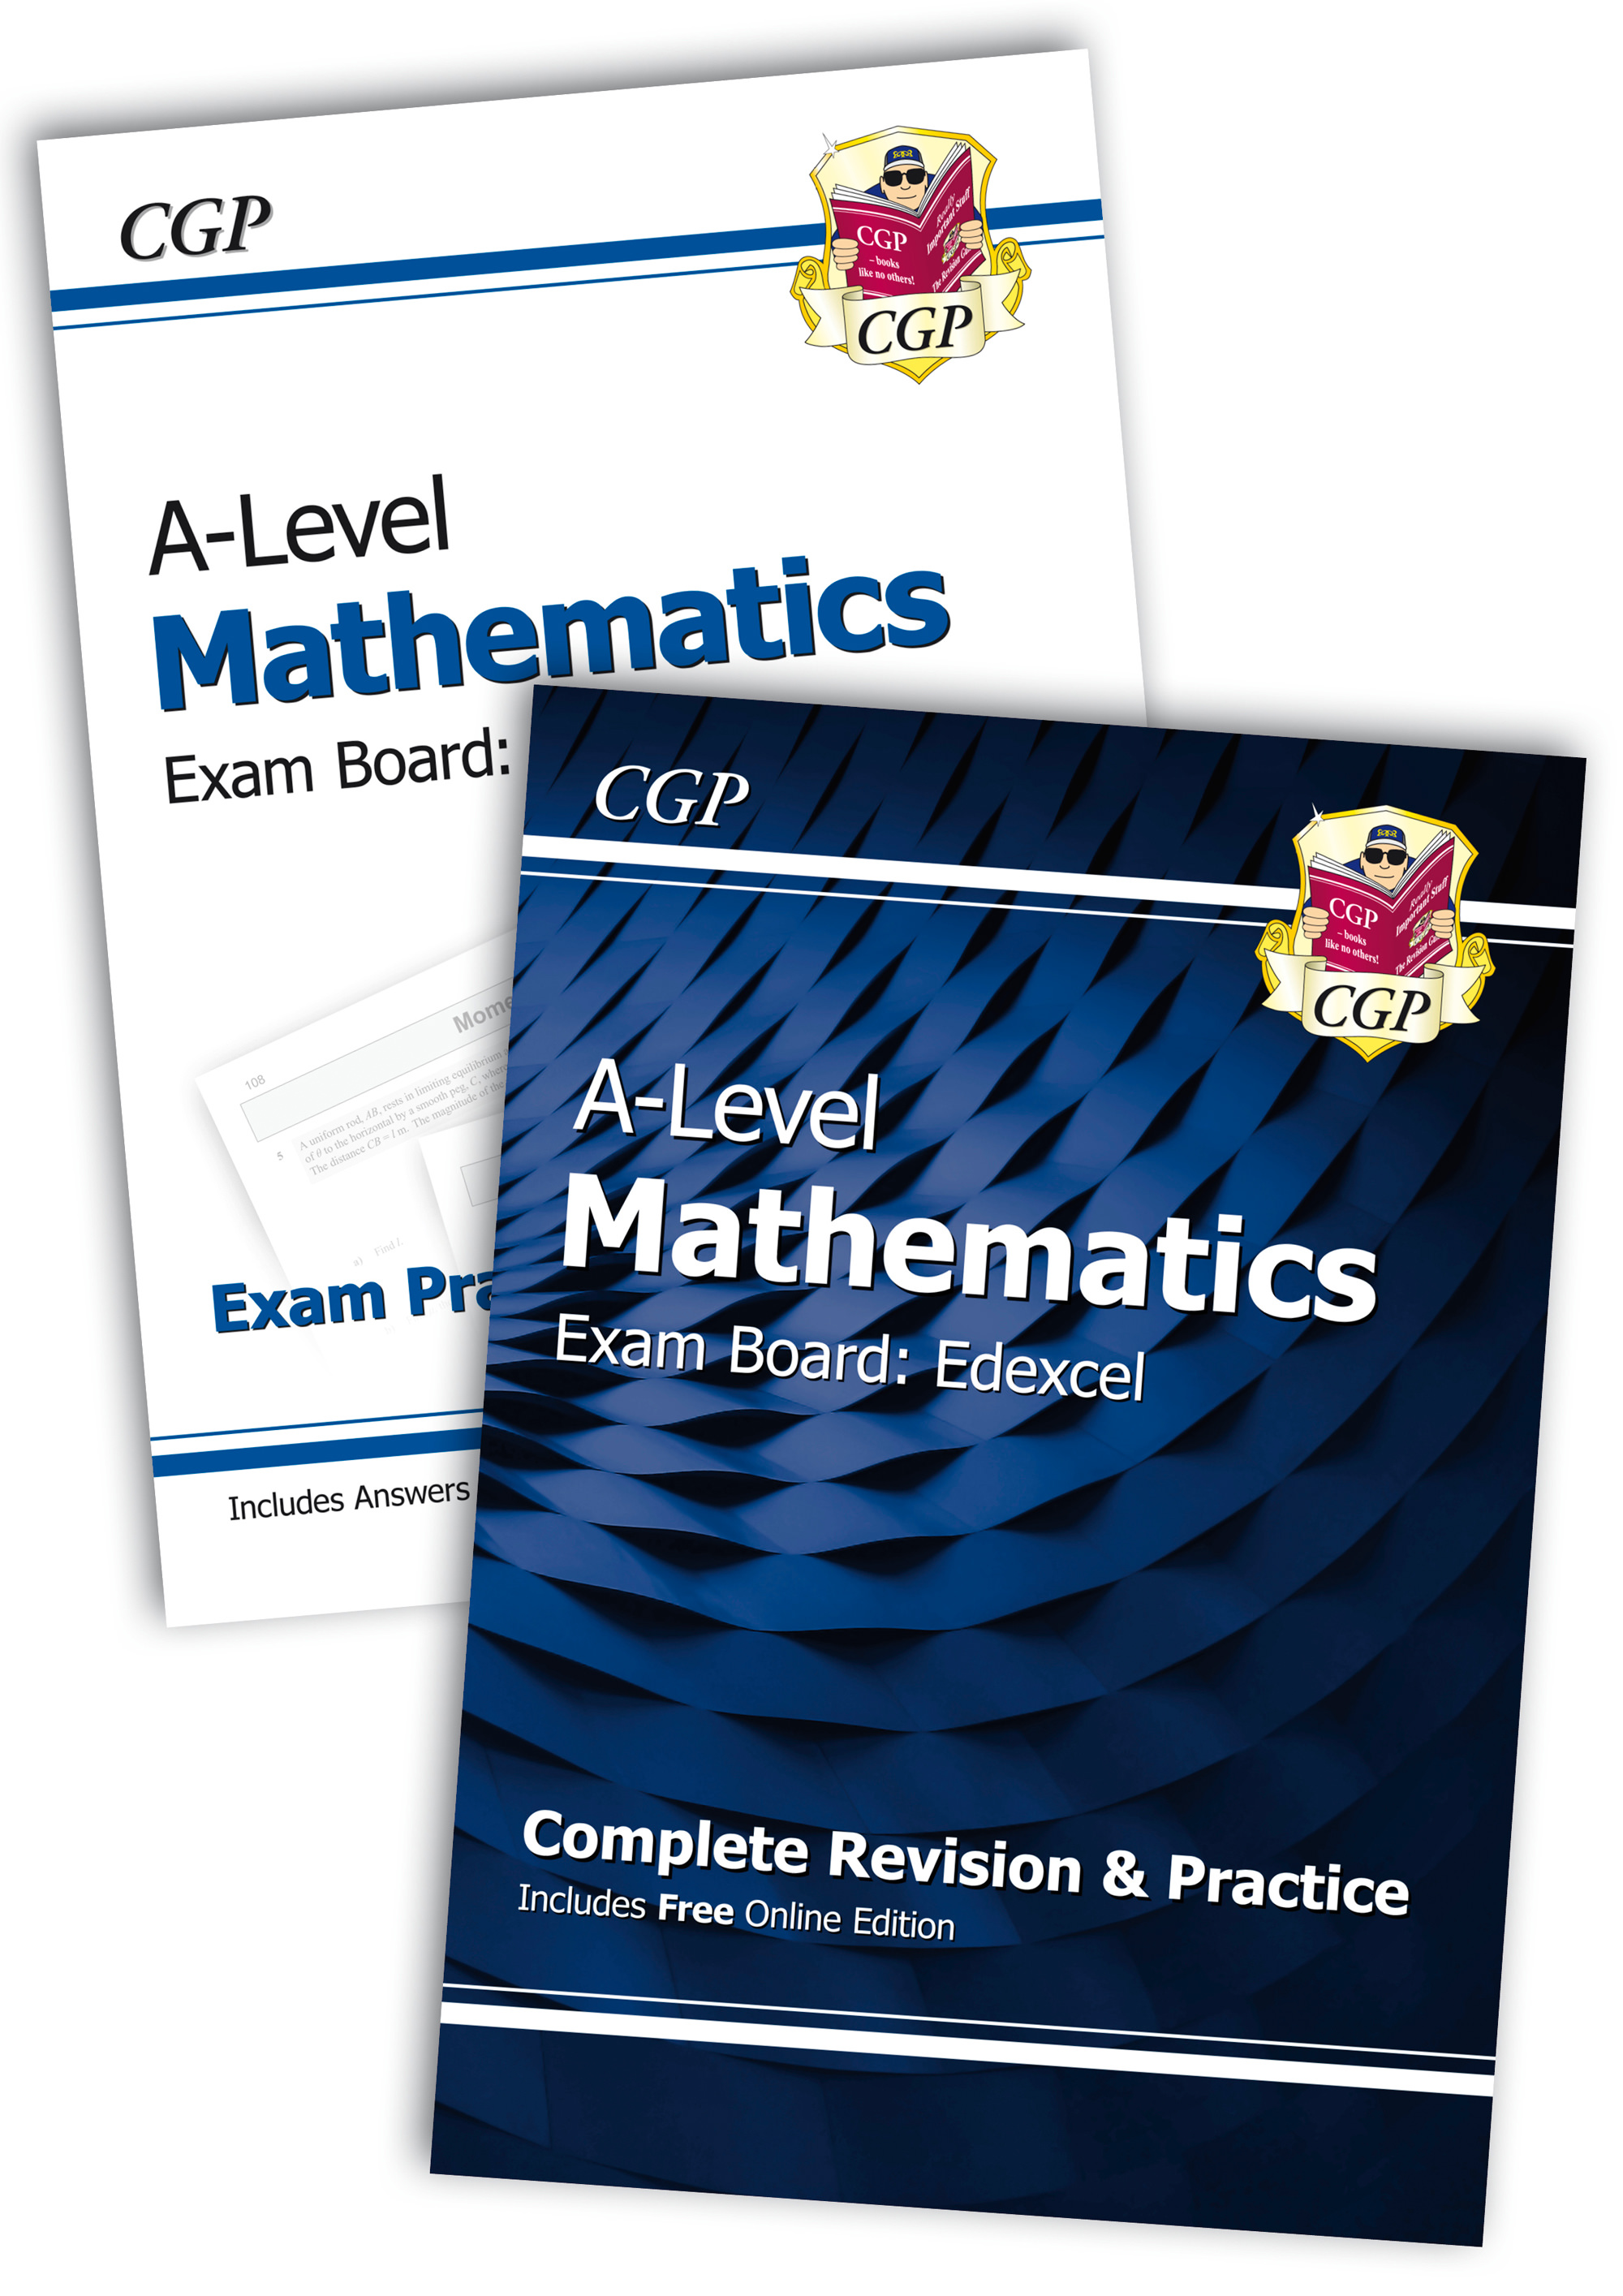 MEHB71 - Complete Revision and Exam Practice A-Level Maths Bundle: Edexcel Year 1 & 2